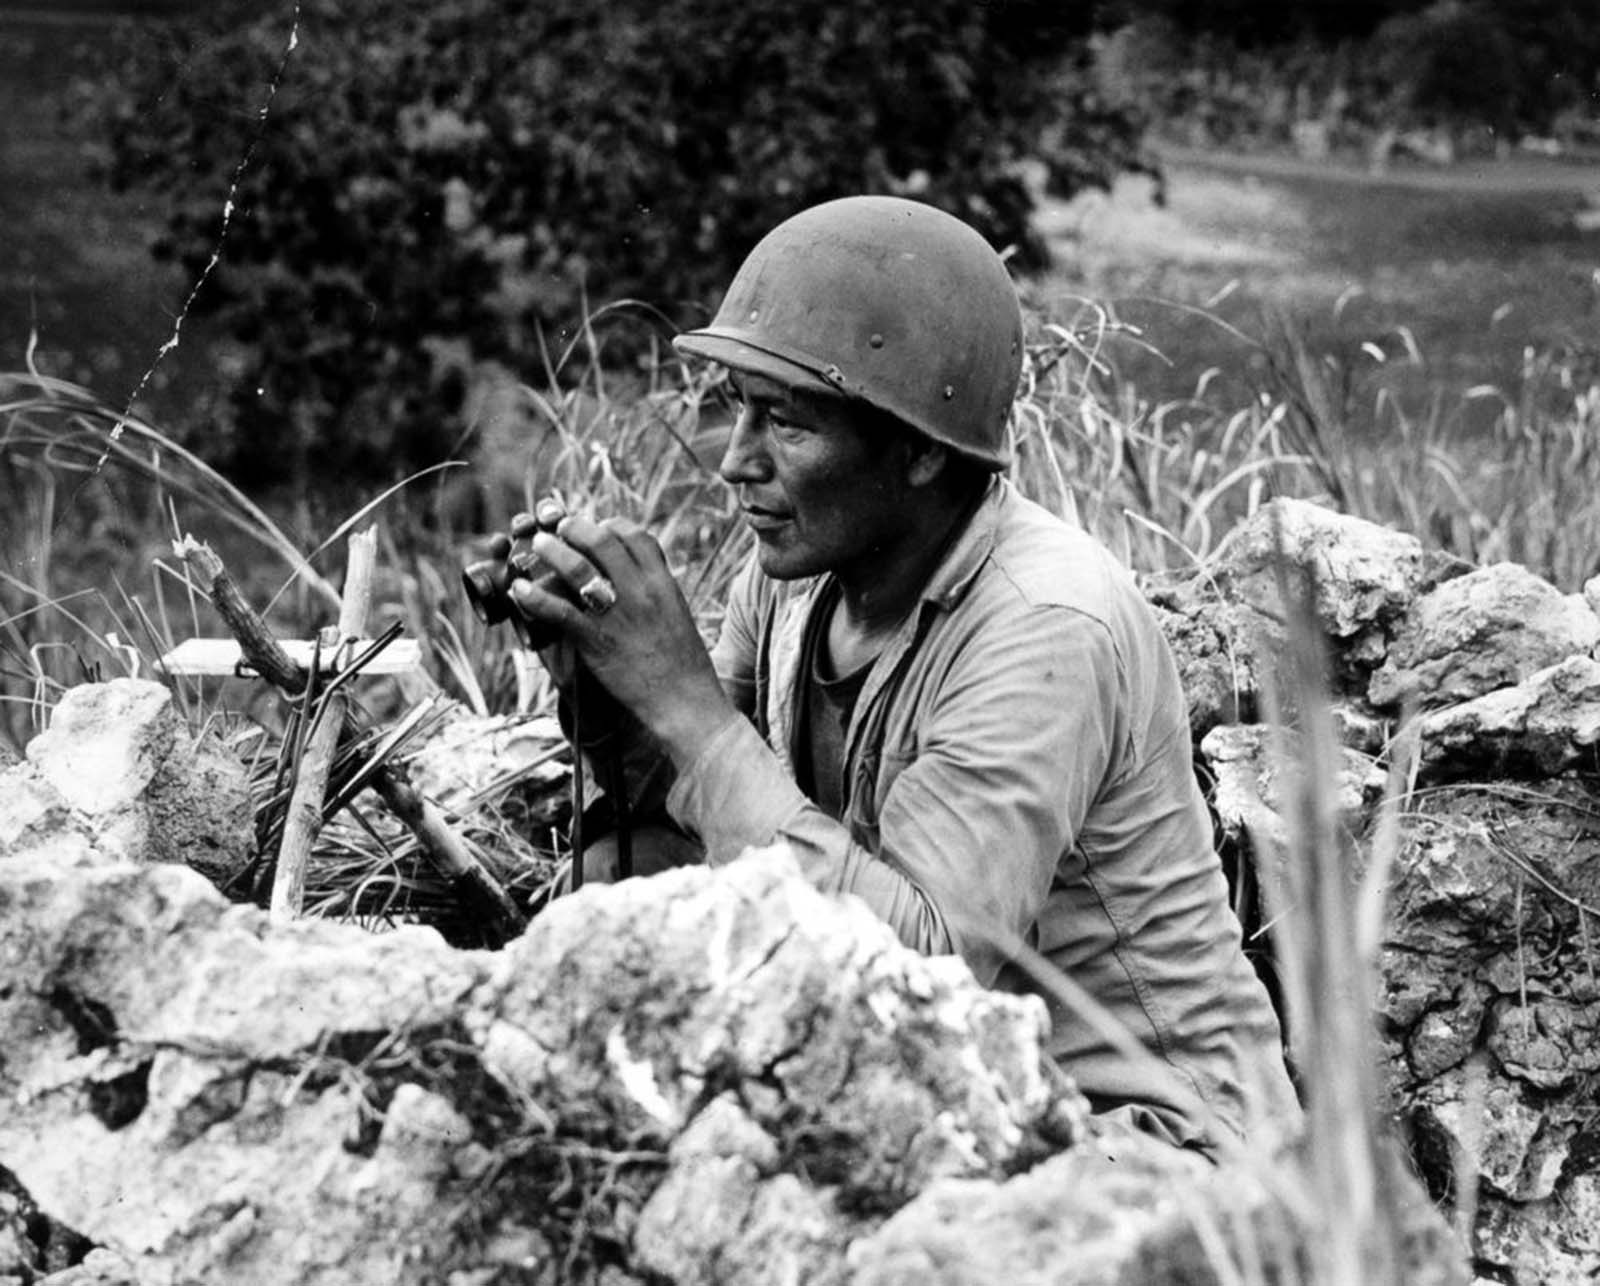 Carl Nelson Gorman, one of the original 29 Navajo code talkers, tracks enemy movements on Saipan. 1944.